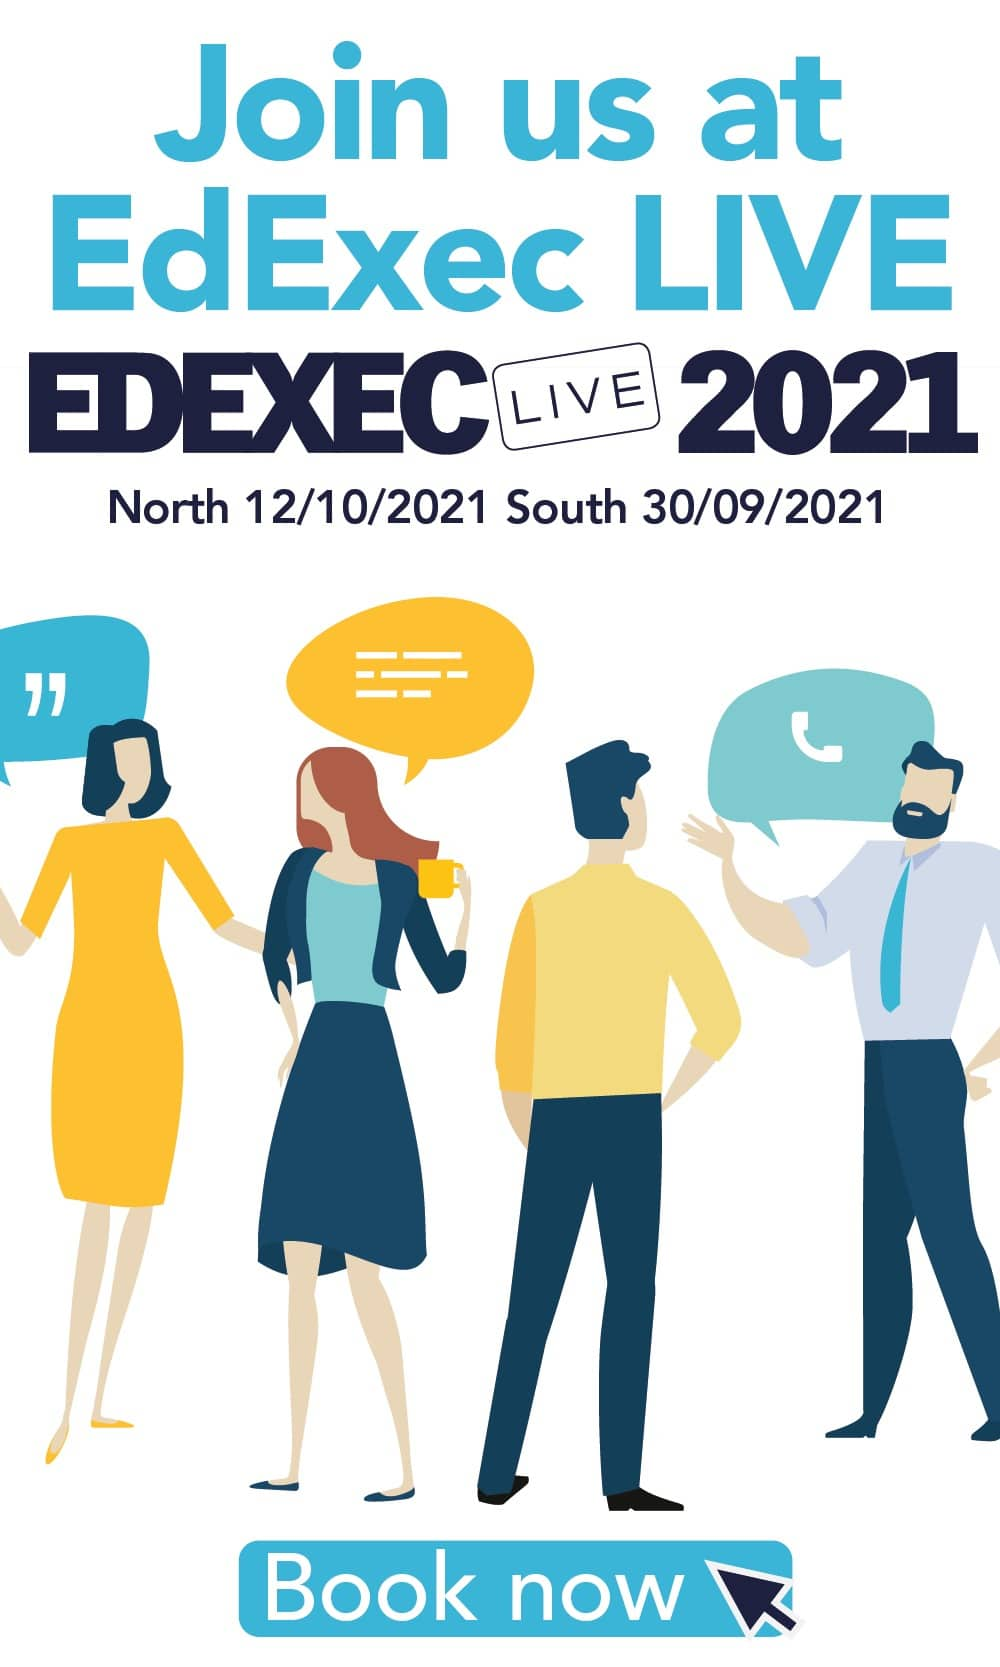 Join us a Edexec Live - North 12/10/21, South 30/09/21